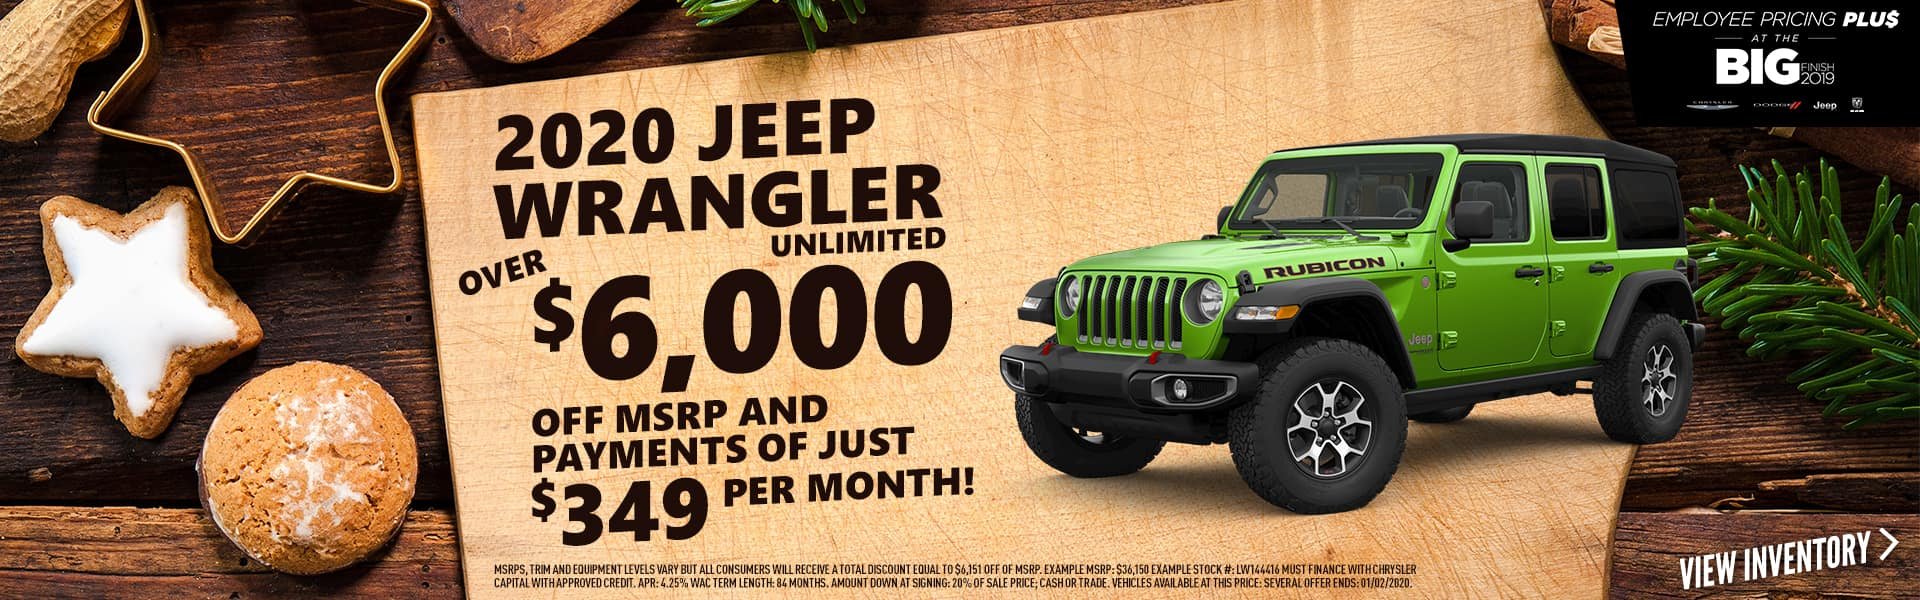 2020 Wrangler Unlimited for over $6,000 off - Expired 1/02/2020